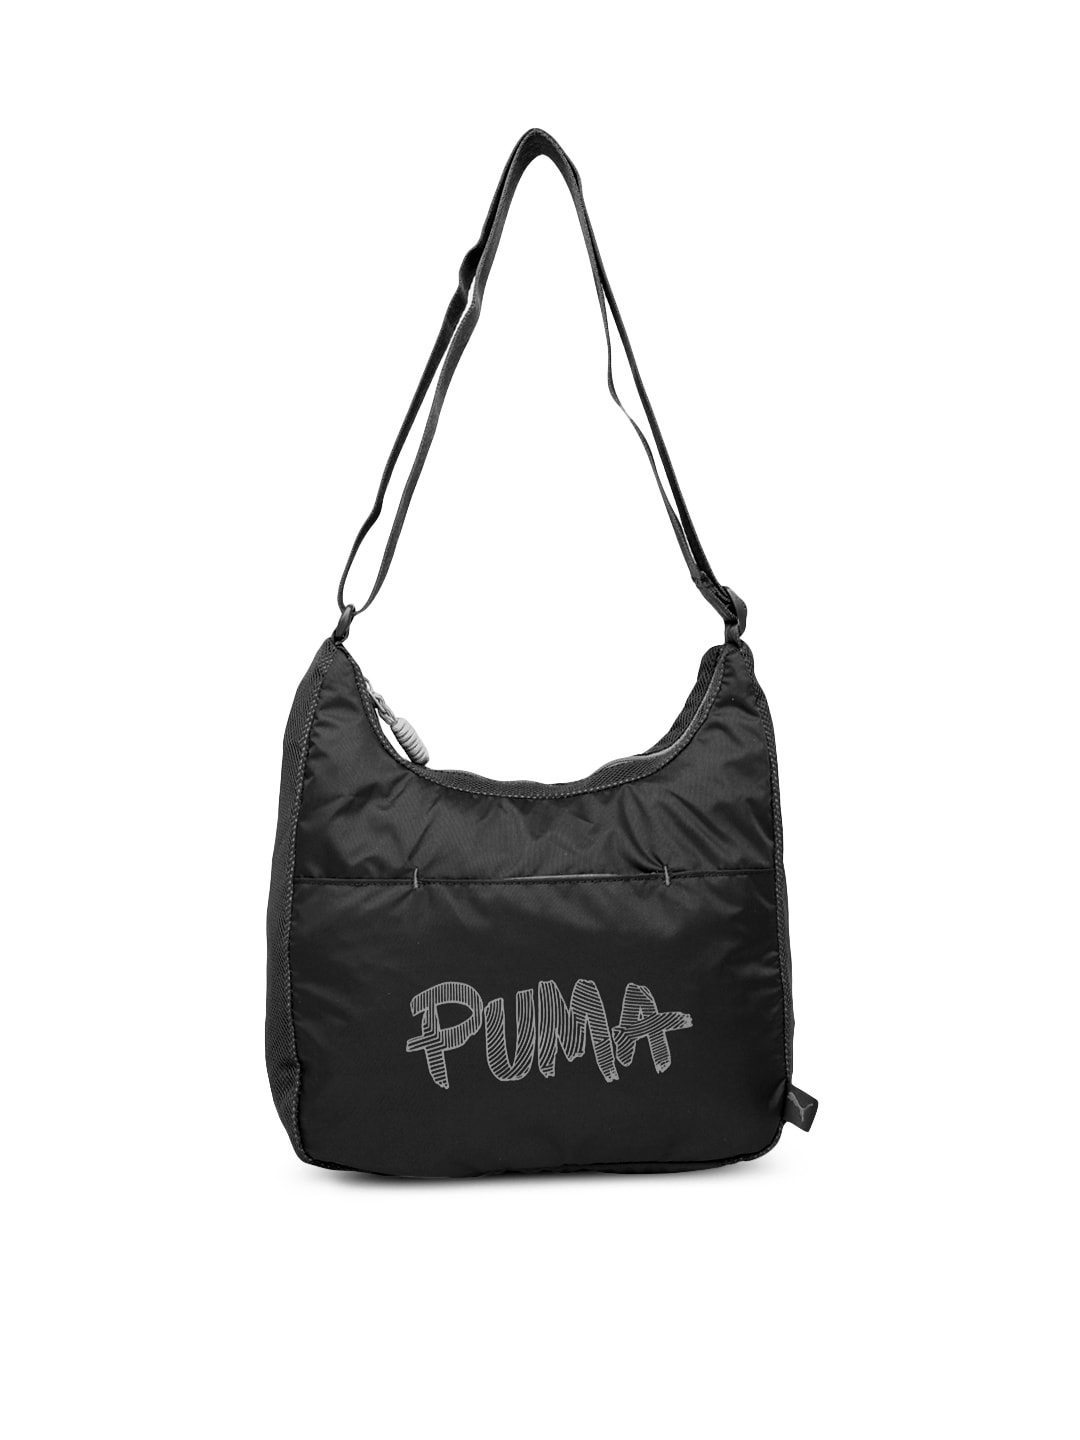 92ea605b40 Puma 7379801 Black Core Sling Bag - Best Price in India